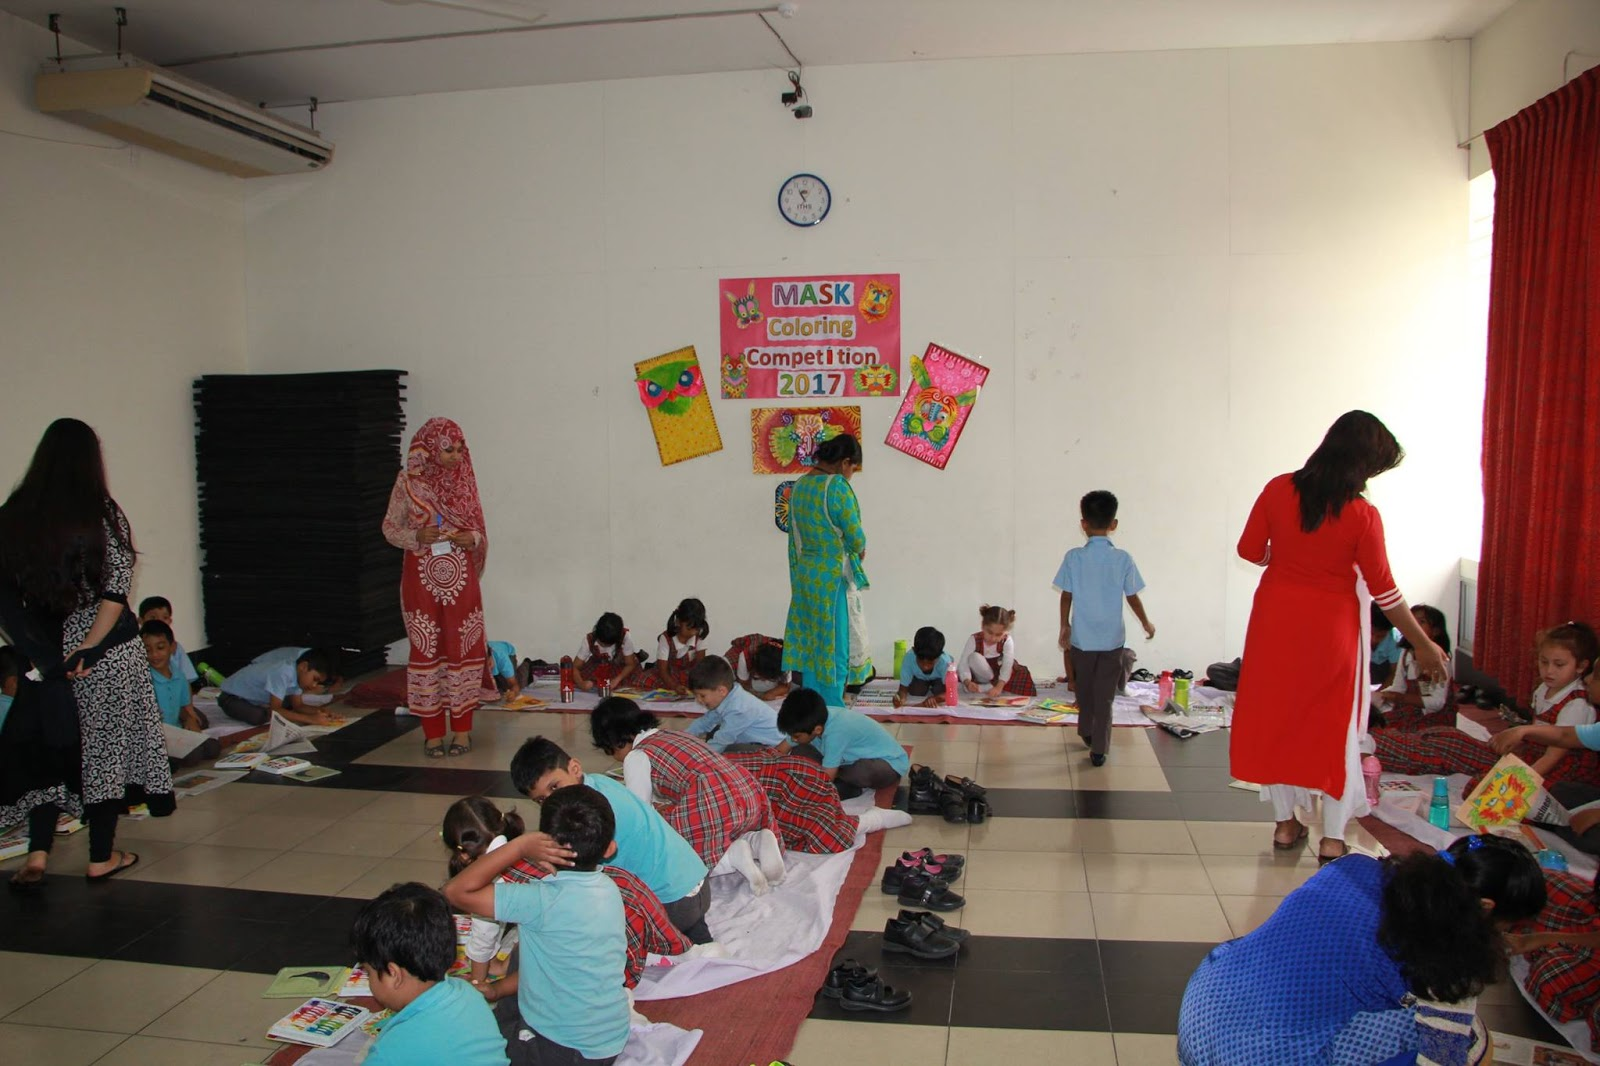 Iths uttara preschool and junior section iths has arranged a mask through mask coloring students got to know various symbols that represent the cultural roots biocorpaavc